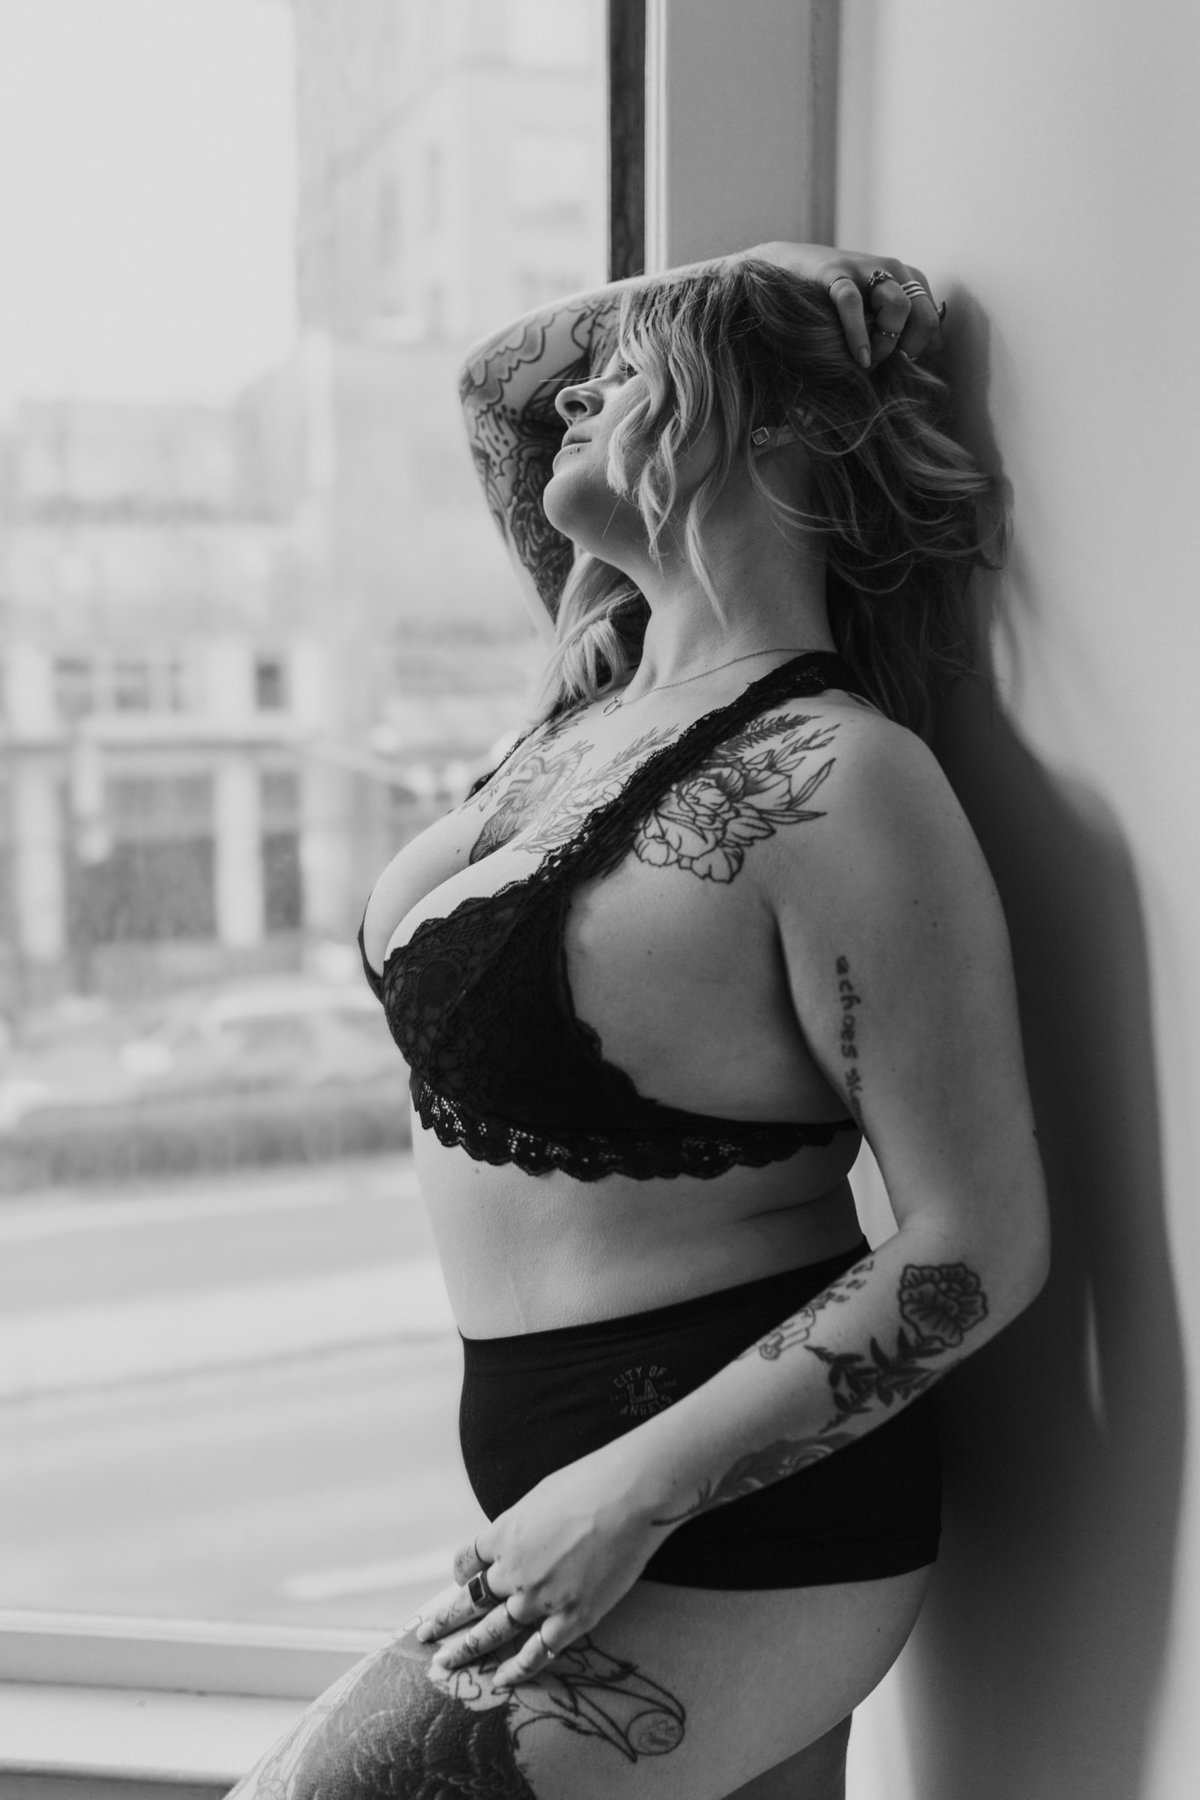 summer-rayne-photo-vancouver-boudoir-photographer-victoria-13